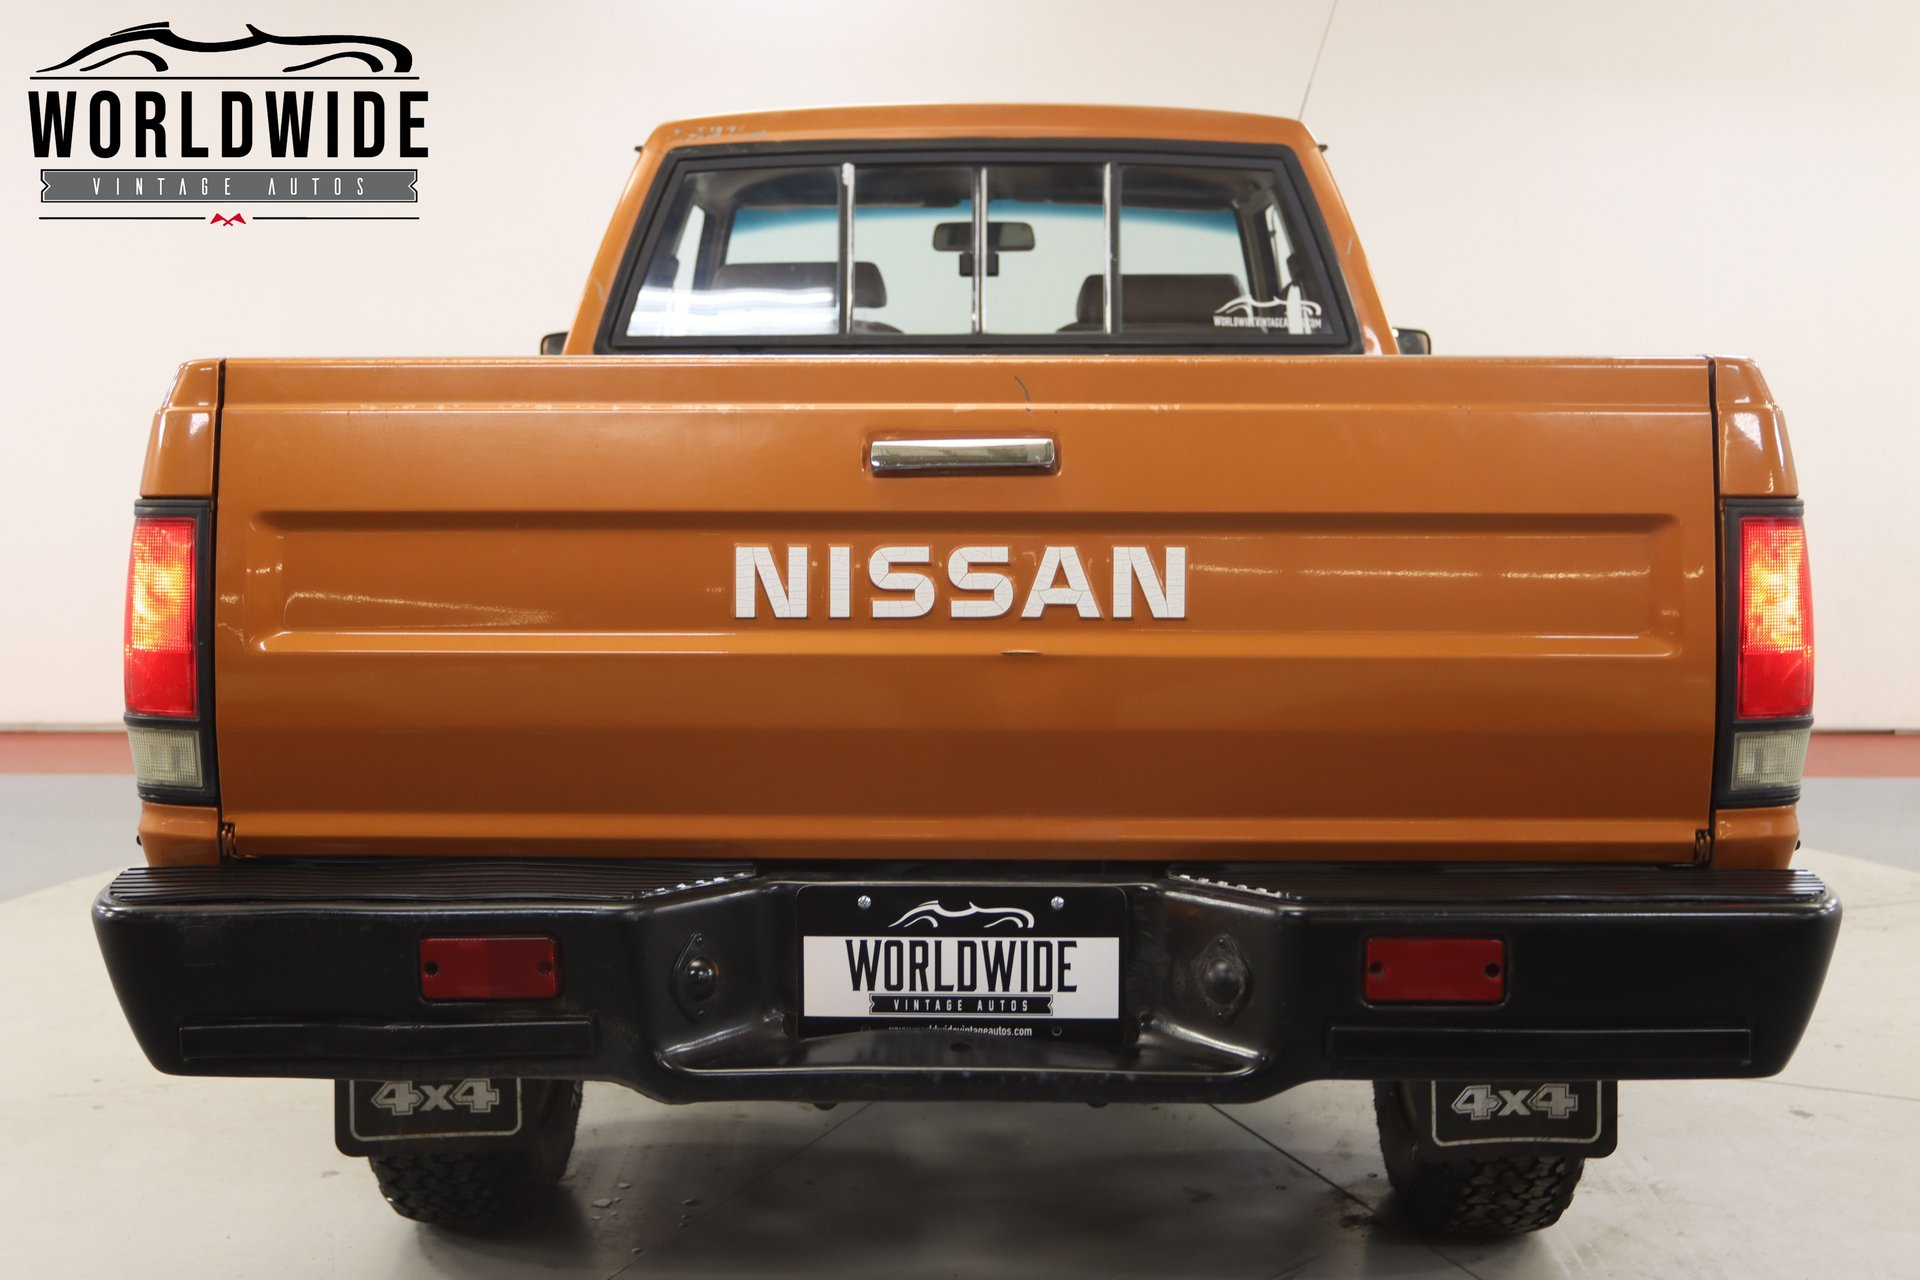 1985 Nissan King Cab